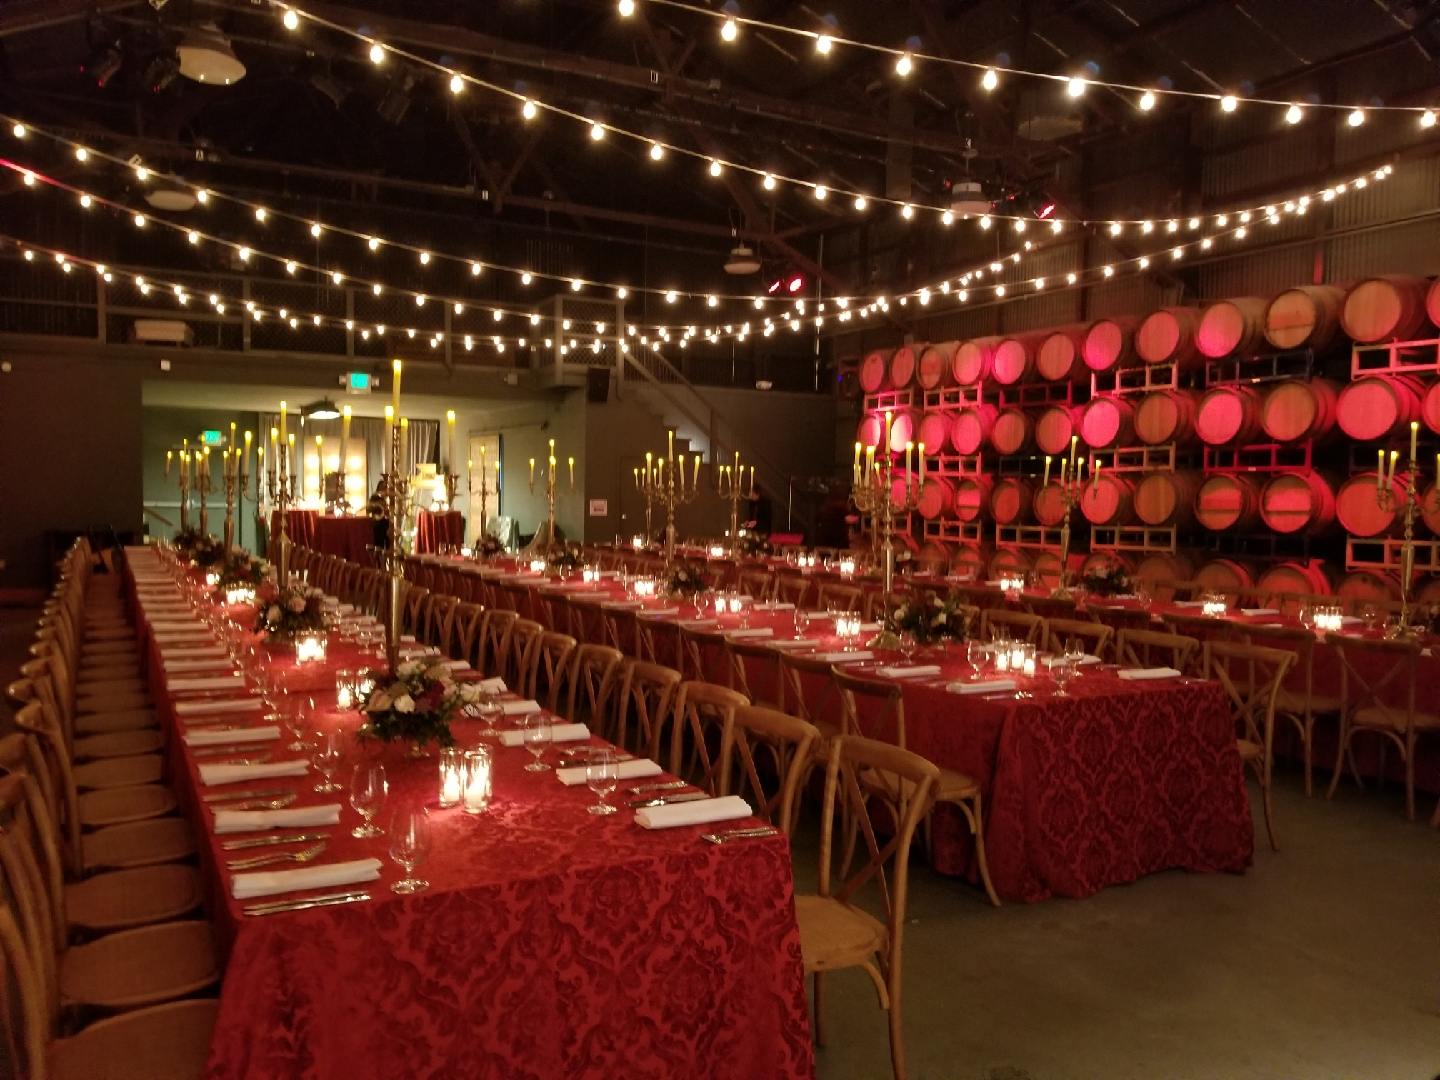 Formal Corporate Seated Dinner Event